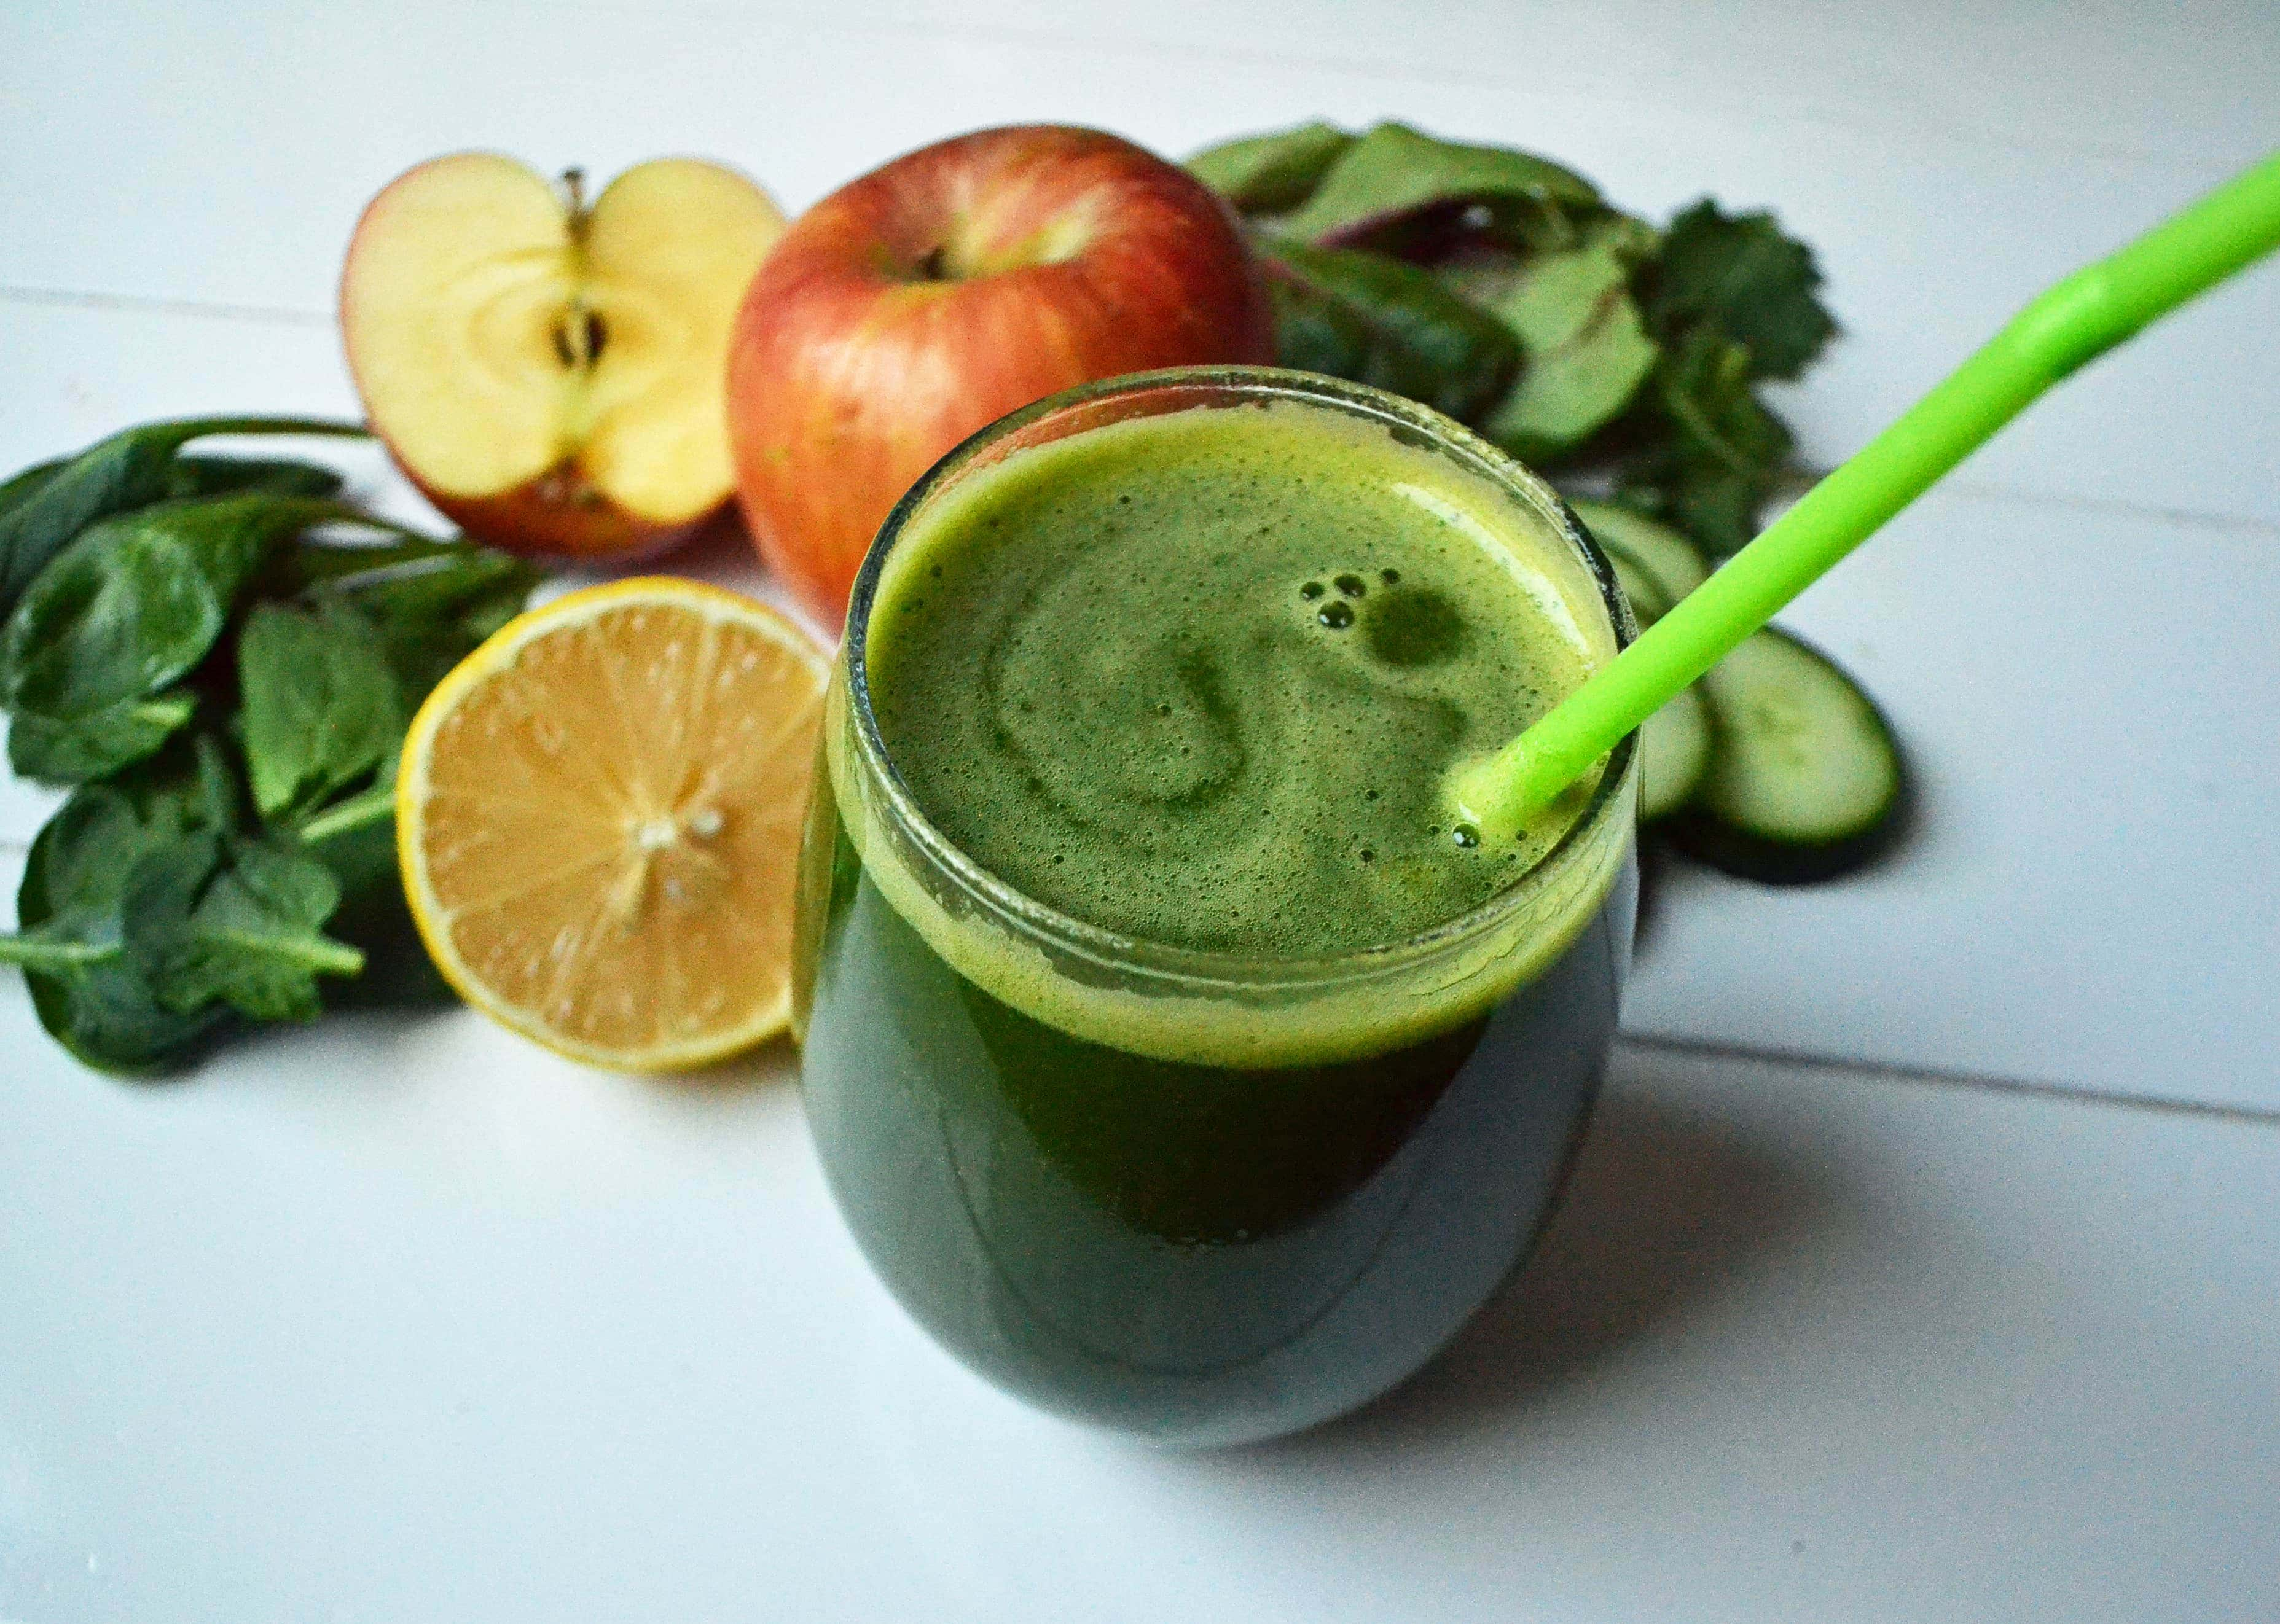 Youthful Glow Green Smoothie by Modern Honey - www.modernhoney.com